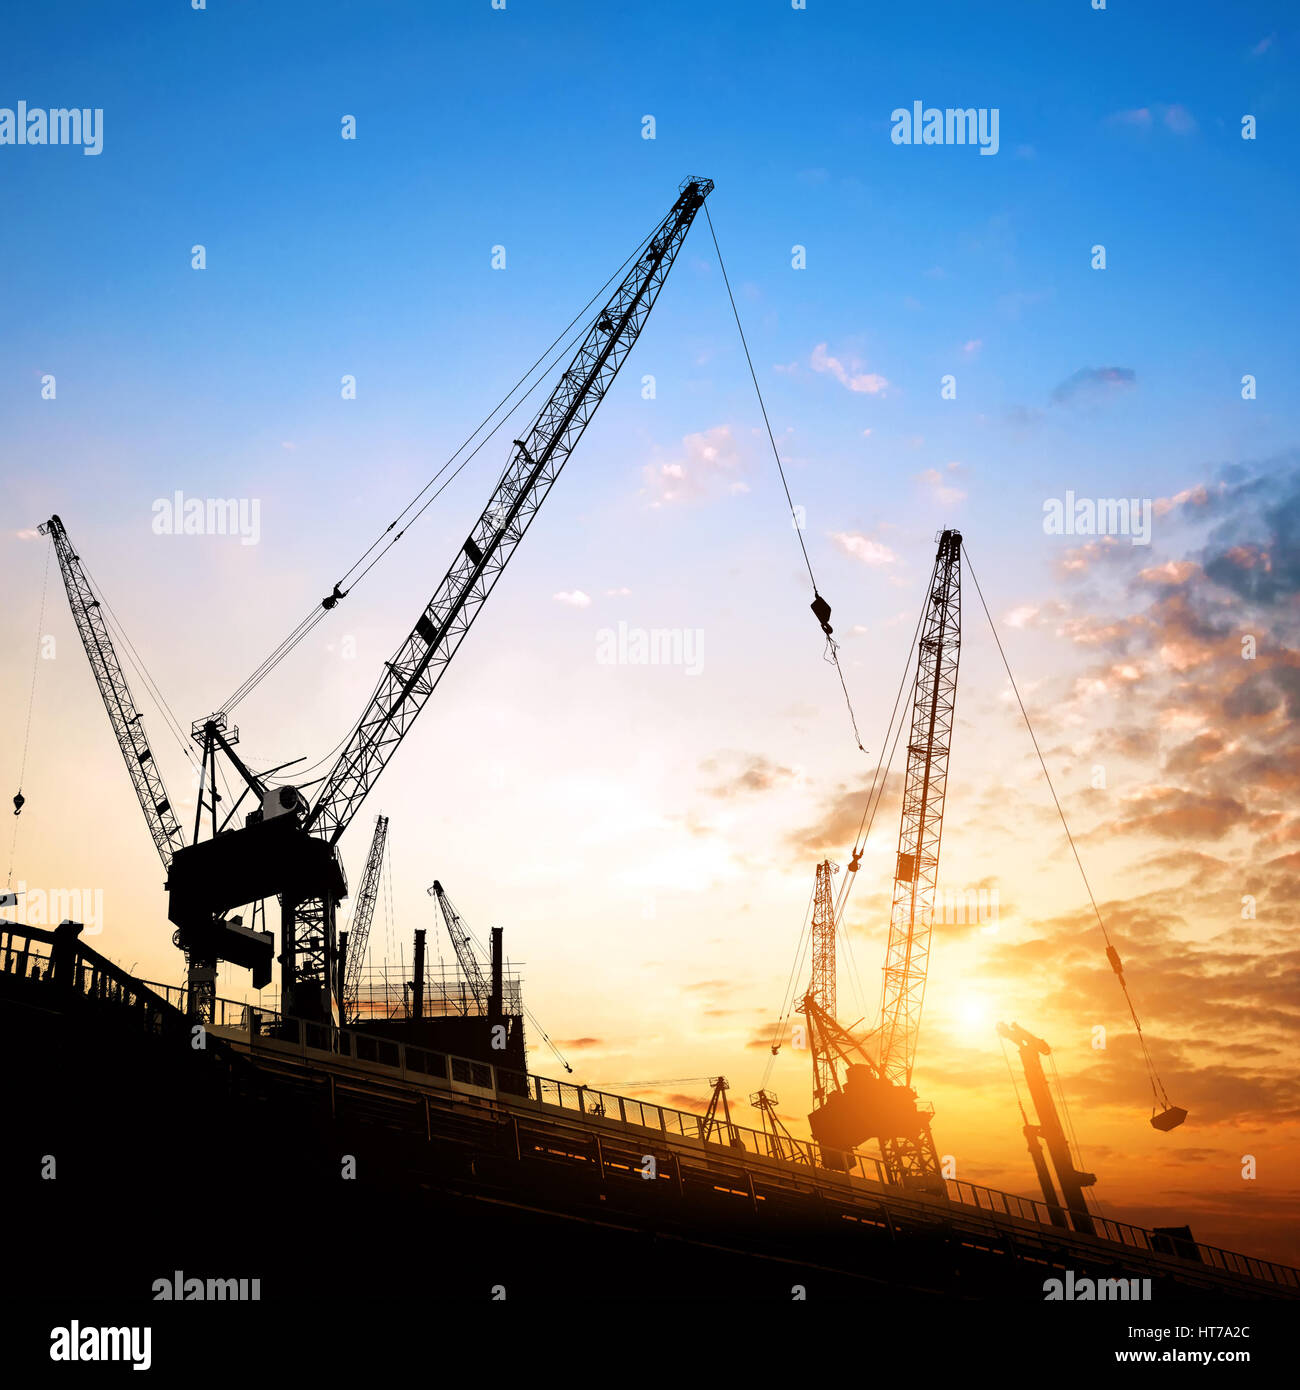 Construction site, cranes and scaffolding silhouette. - Stock Image